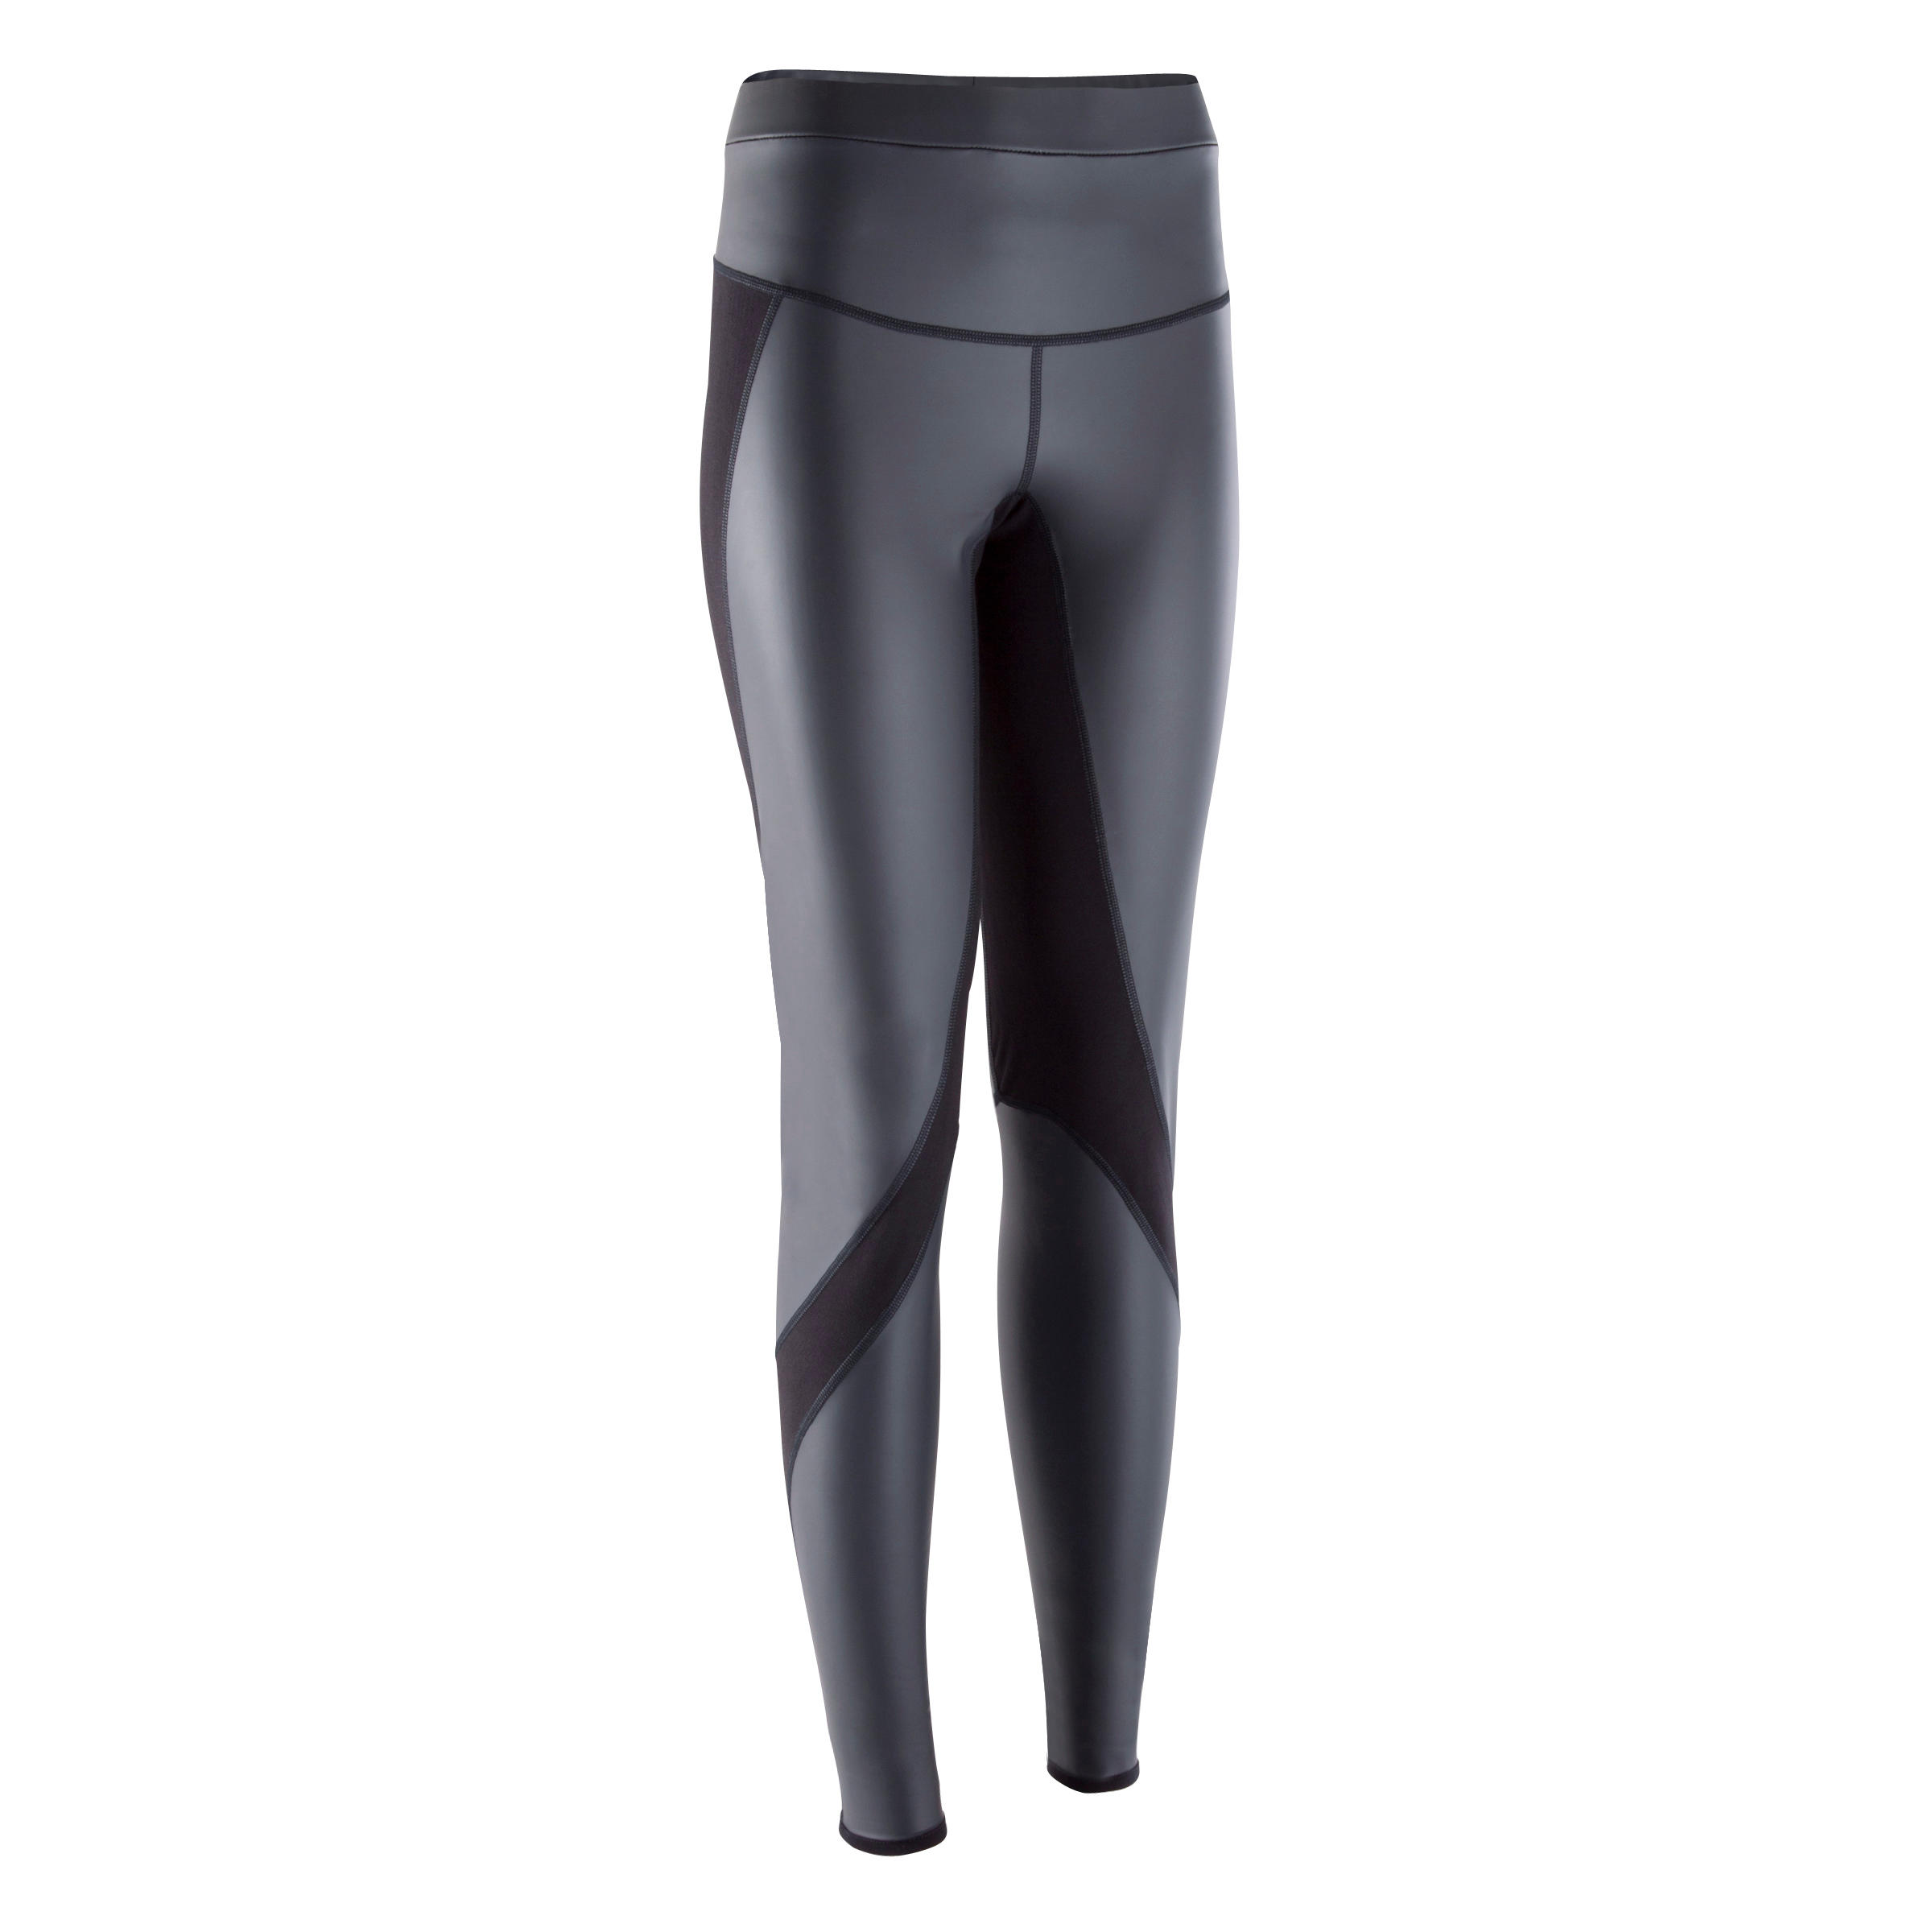 Legging de sudation fitness cardio femme noir SWEAT +